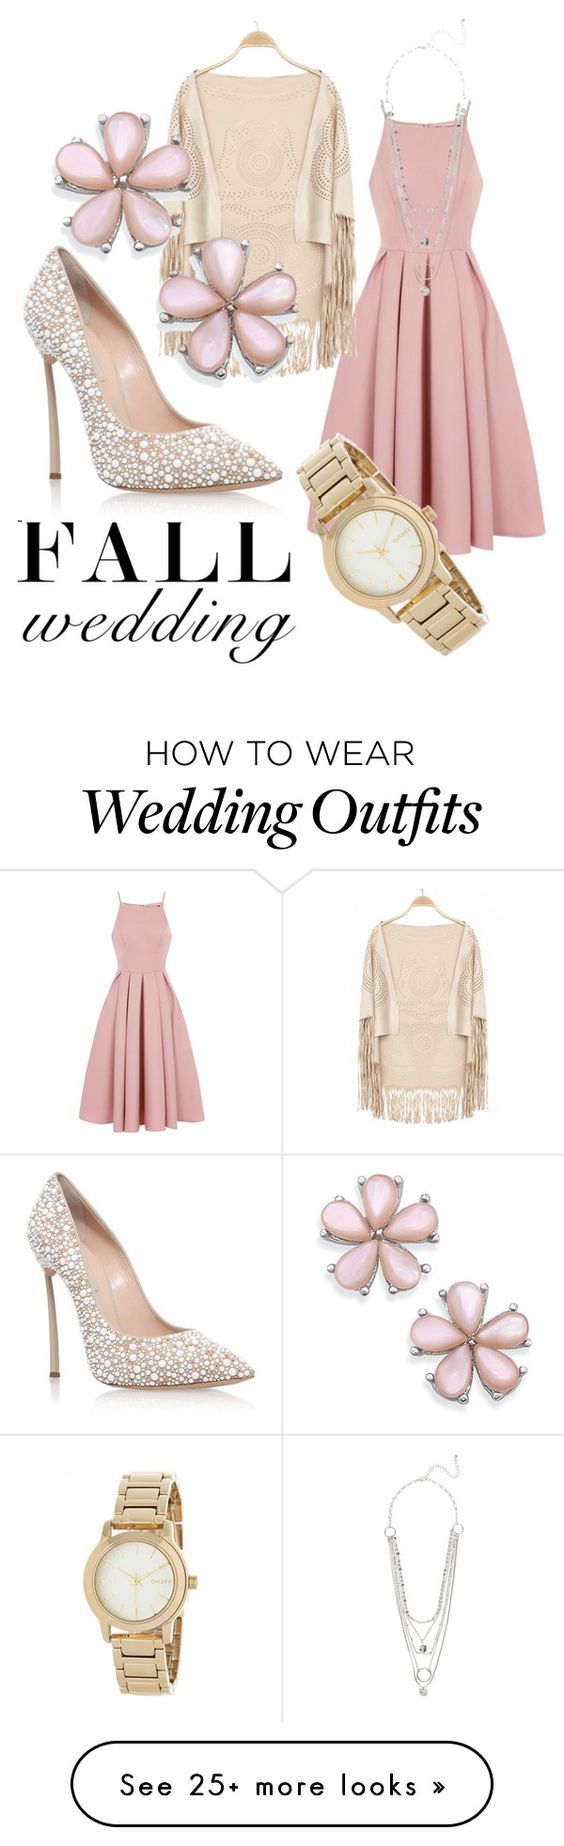 """Wedding Guest Attire"" by feistytulips on Polyvore featuring Chi Chi, Casadei, DKNY and fallwedding"